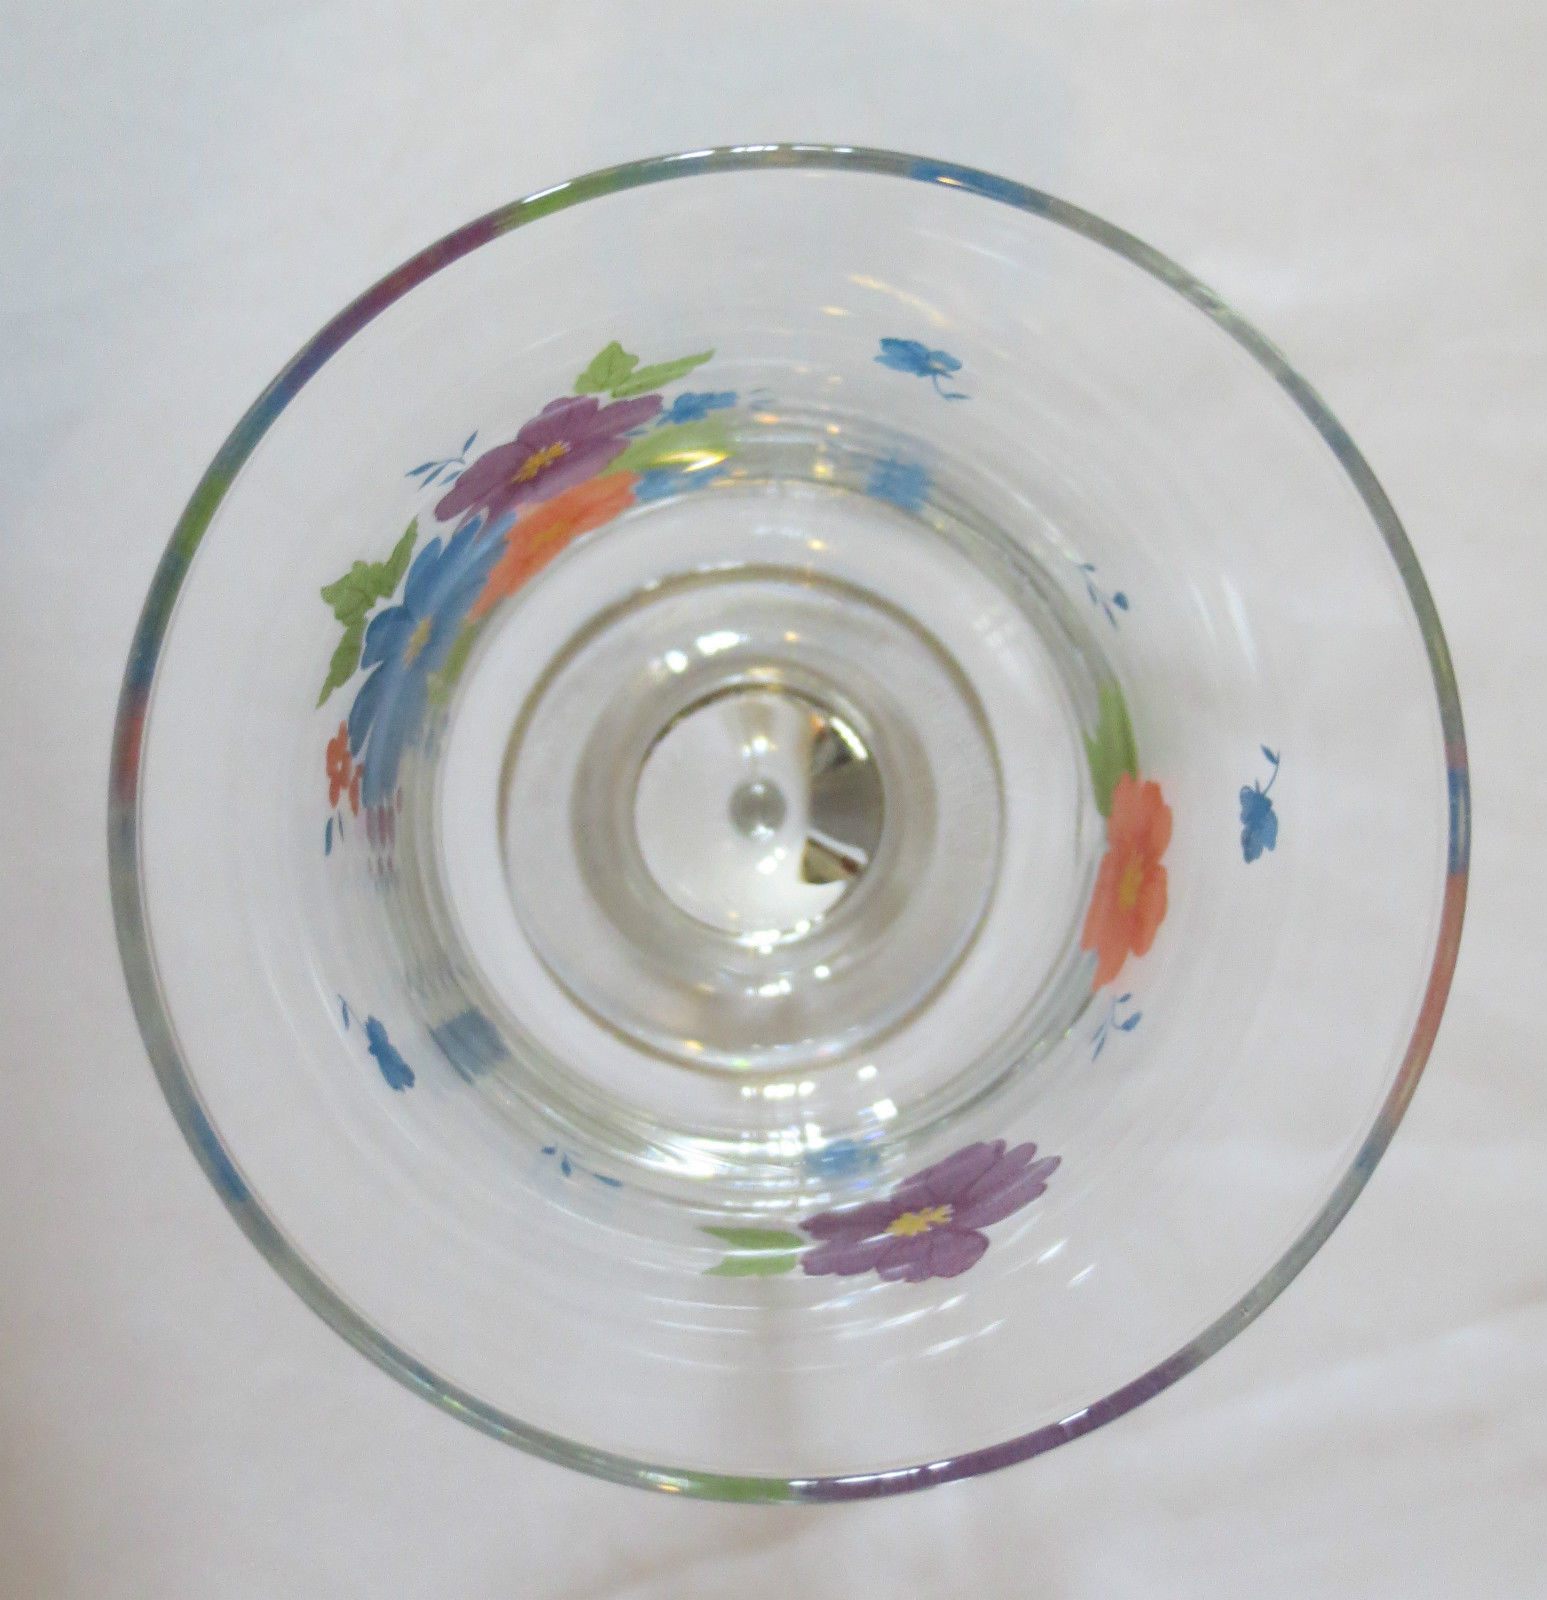 Set 6 Daisy Floral Water Wine Glasses goblets stemware